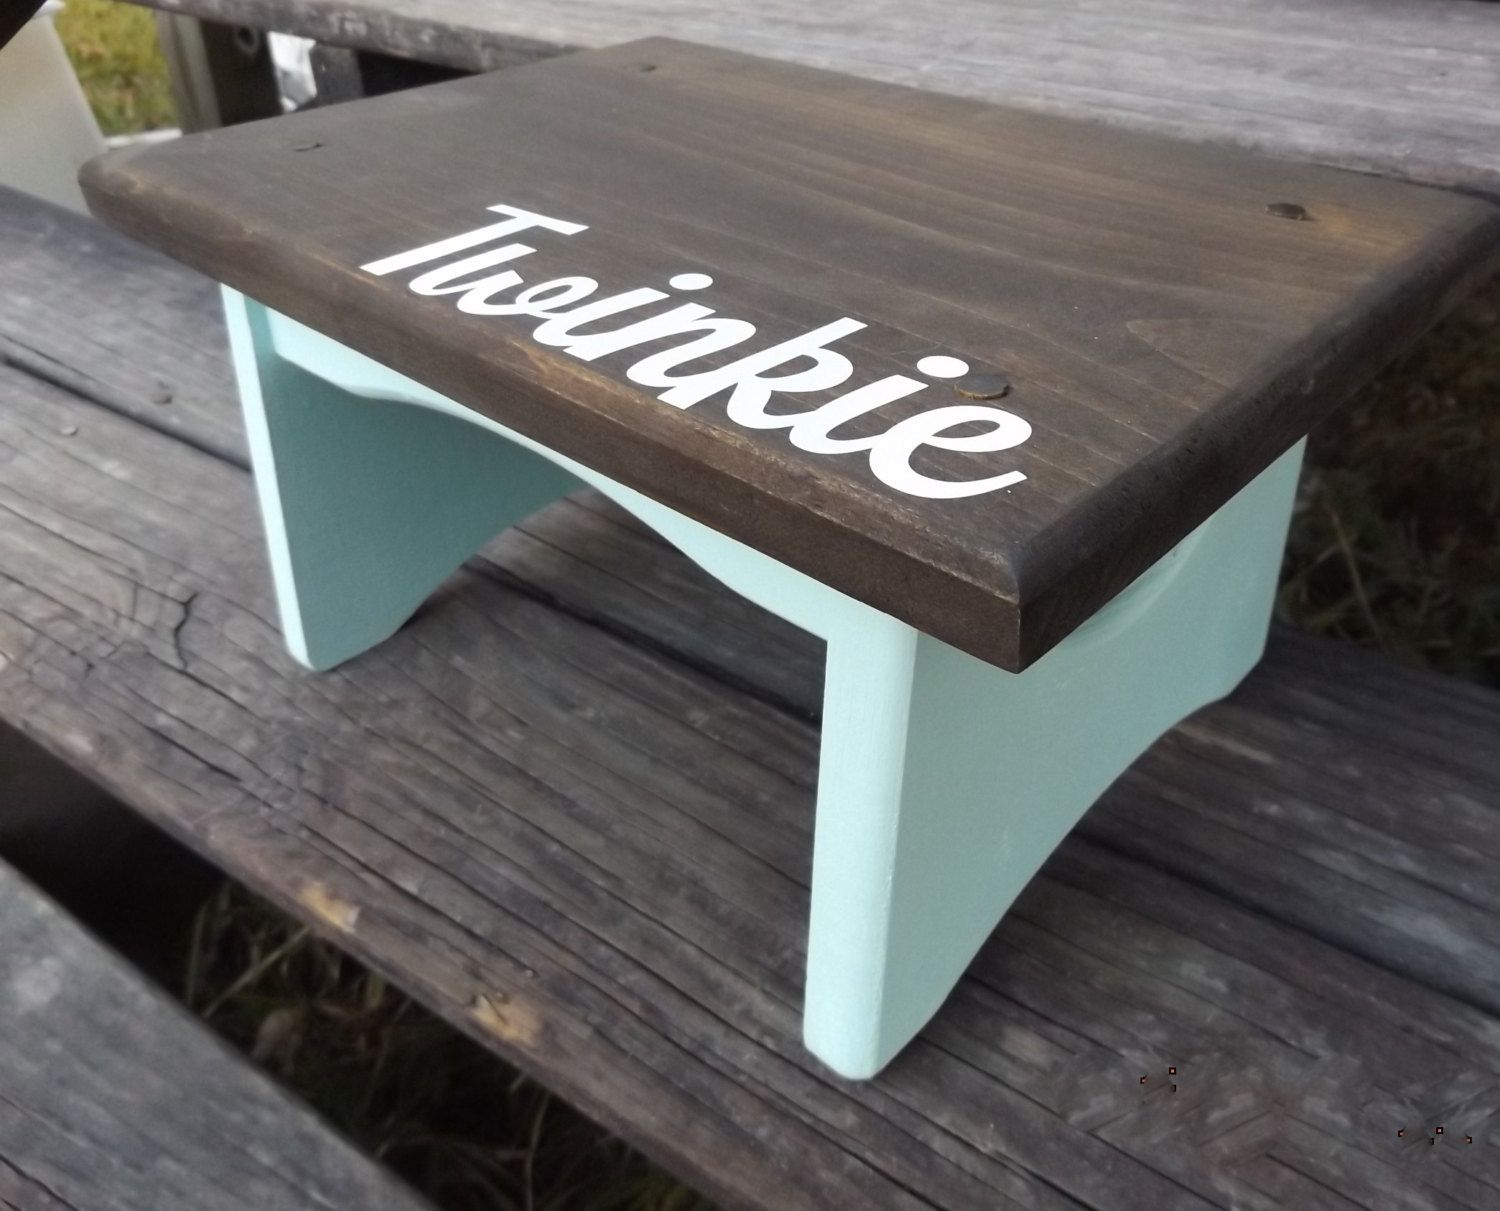 Wooden dollhouse step foot stool wood footstool stepstool furniture - Wooden Child S Step Stool With Name Personalized Walnut Stain Kid Toddler And Mint Shown